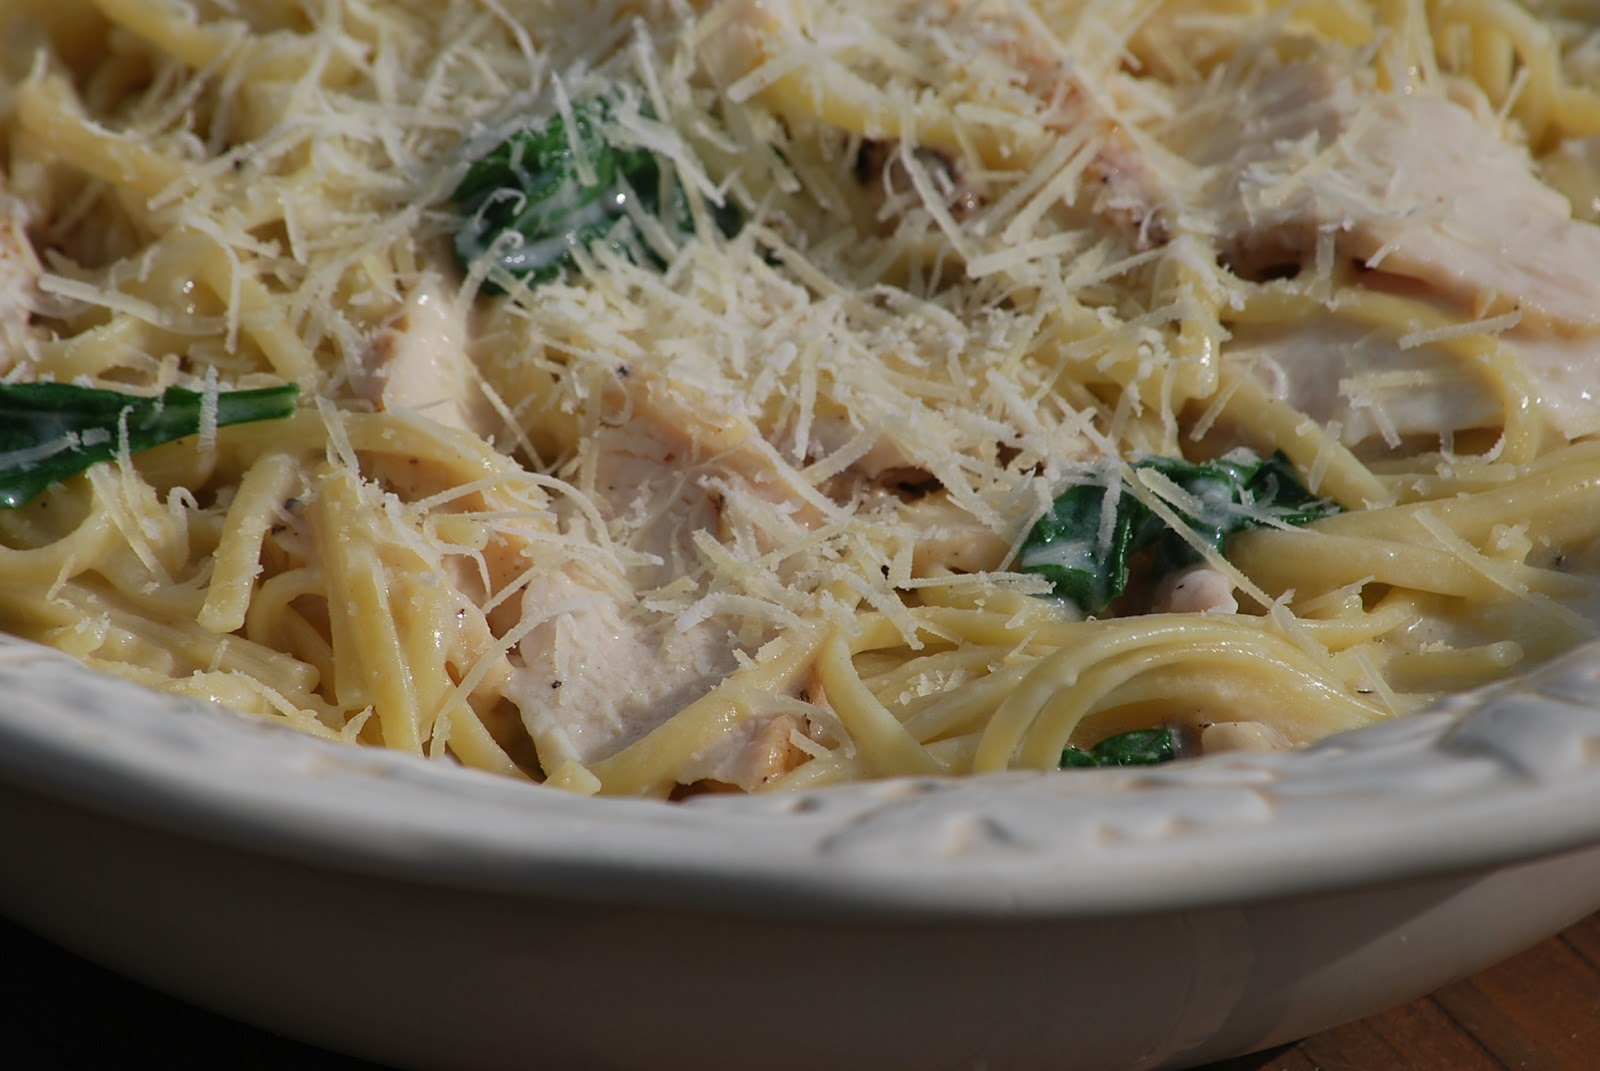 My story in recipes: Grilled Chicken Florentine Pasta